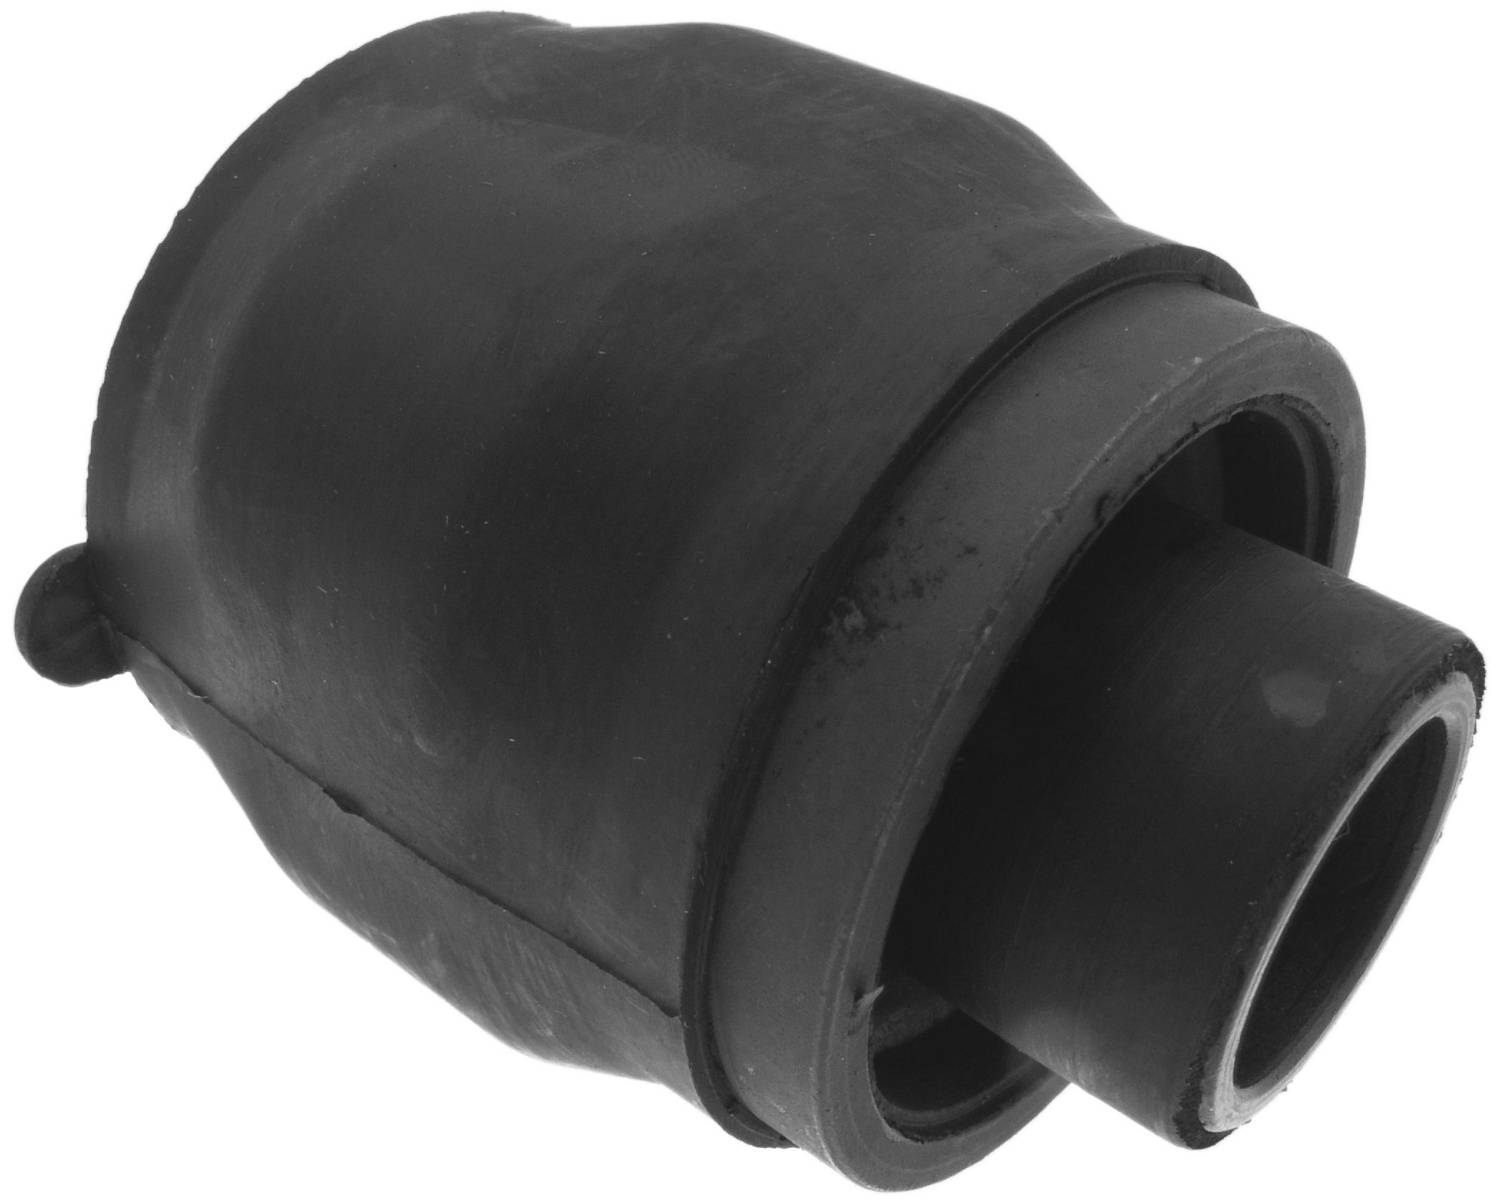 Rear Arm Bushing For Front Arm - Febest # MZAB-043